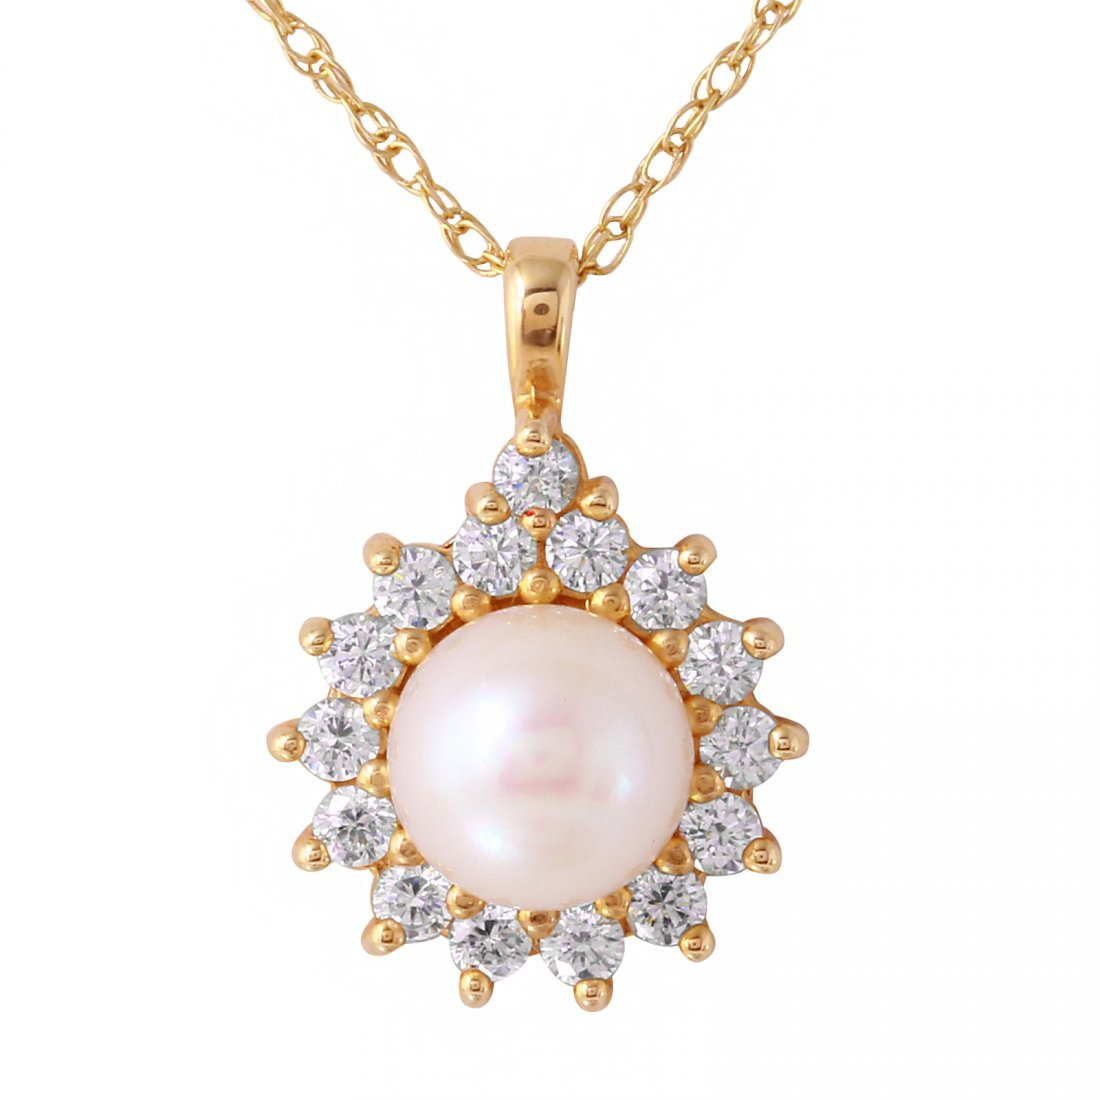 14KT Yellow Gold Pearl and Topaz Pendant & Chain